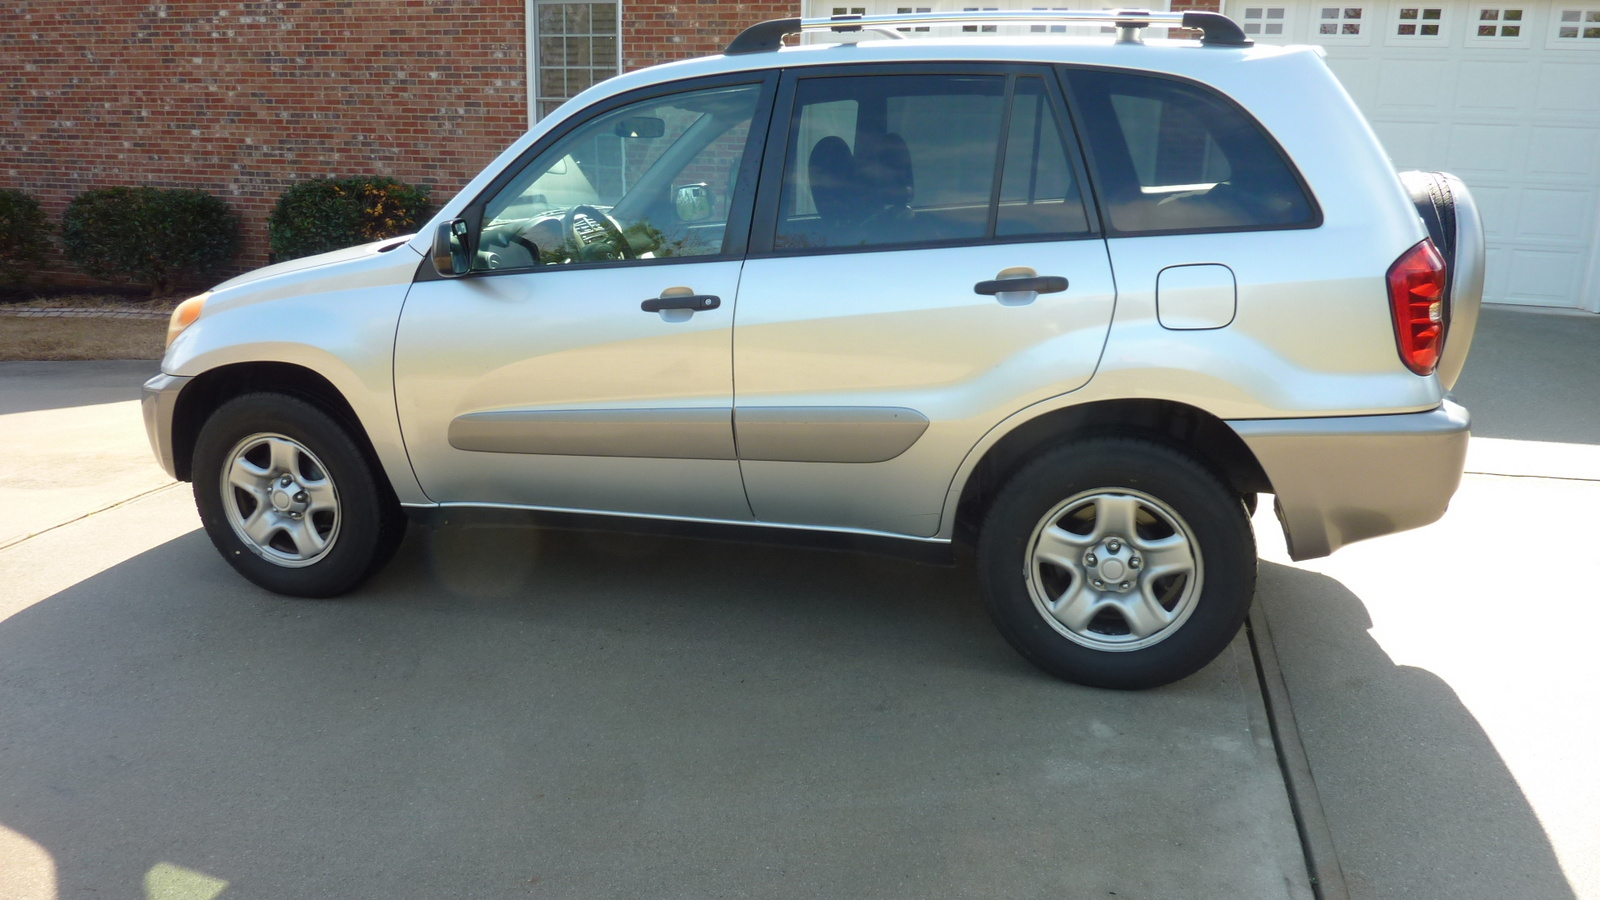 2004 toyota rav4 engine complaints car complaints autos post. Black Bedroom Furniture Sets. Home Design Ideas